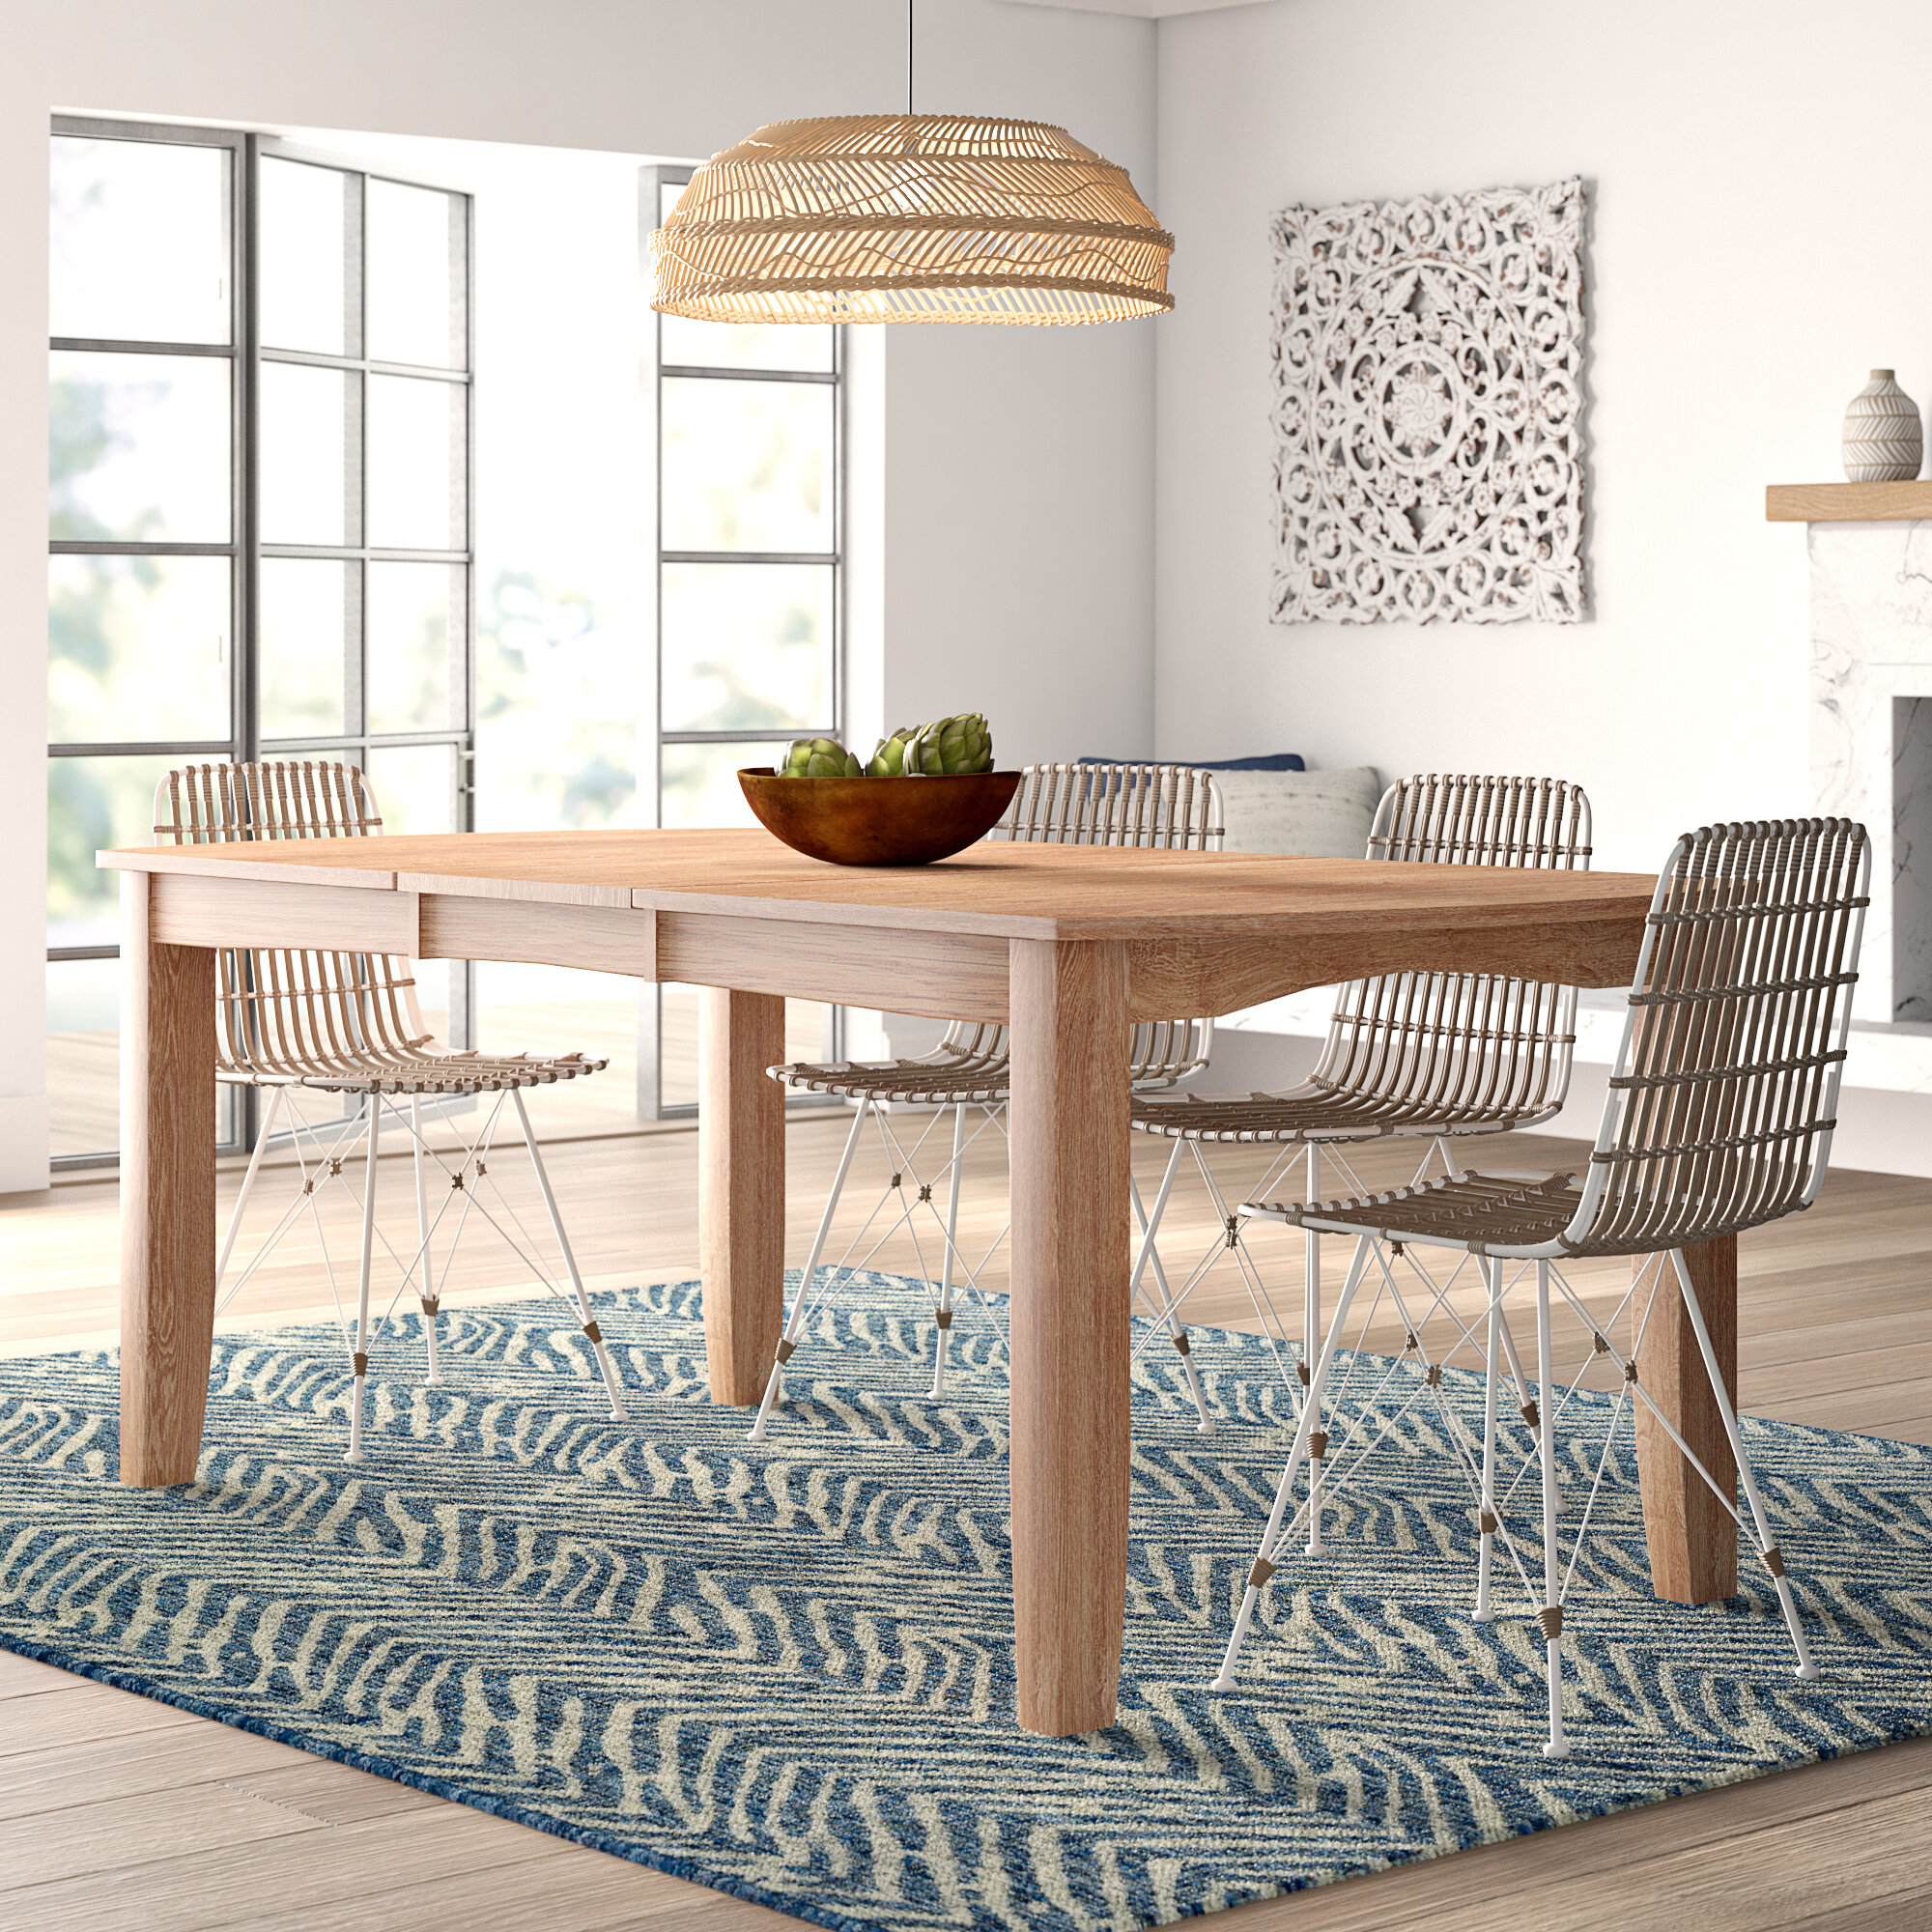 Wooden Extendable Dining Tables – Table Design Ideas Within Latest Driftwood White Hart Reclaimed Pedestal Extending Dining Tables (Image 24 of 25)